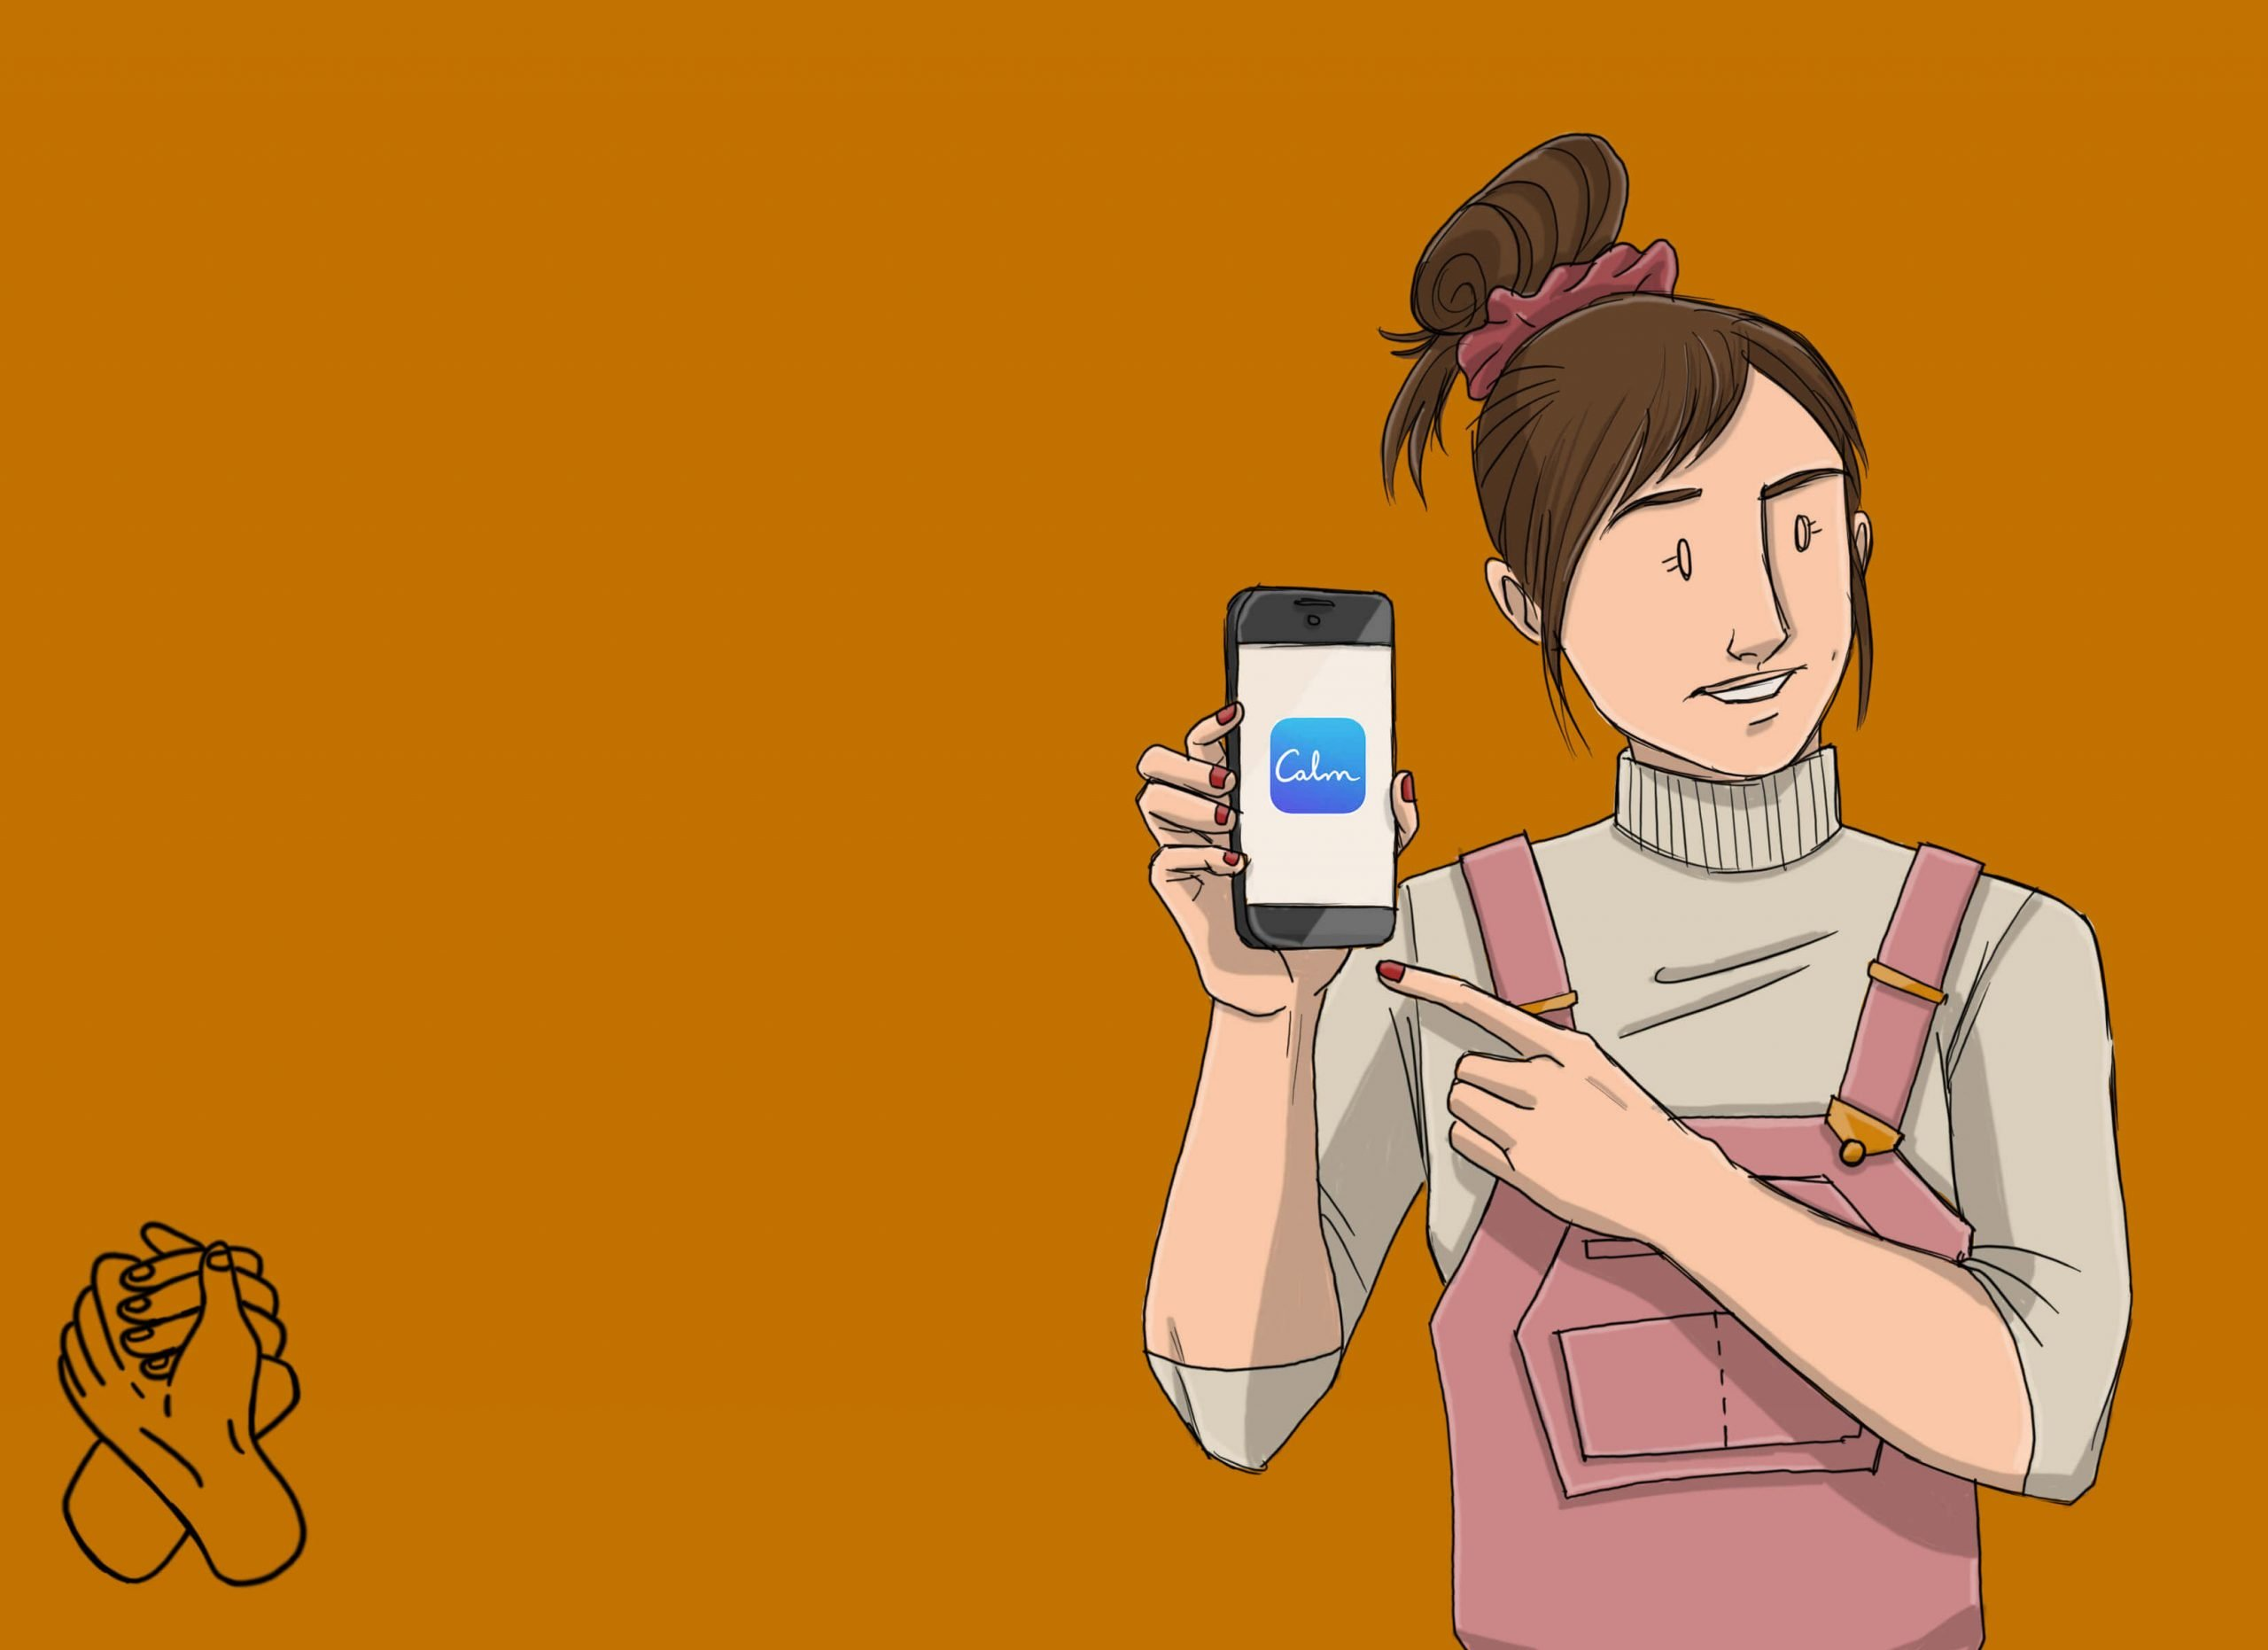 This is a drawing of a girl using the calm app